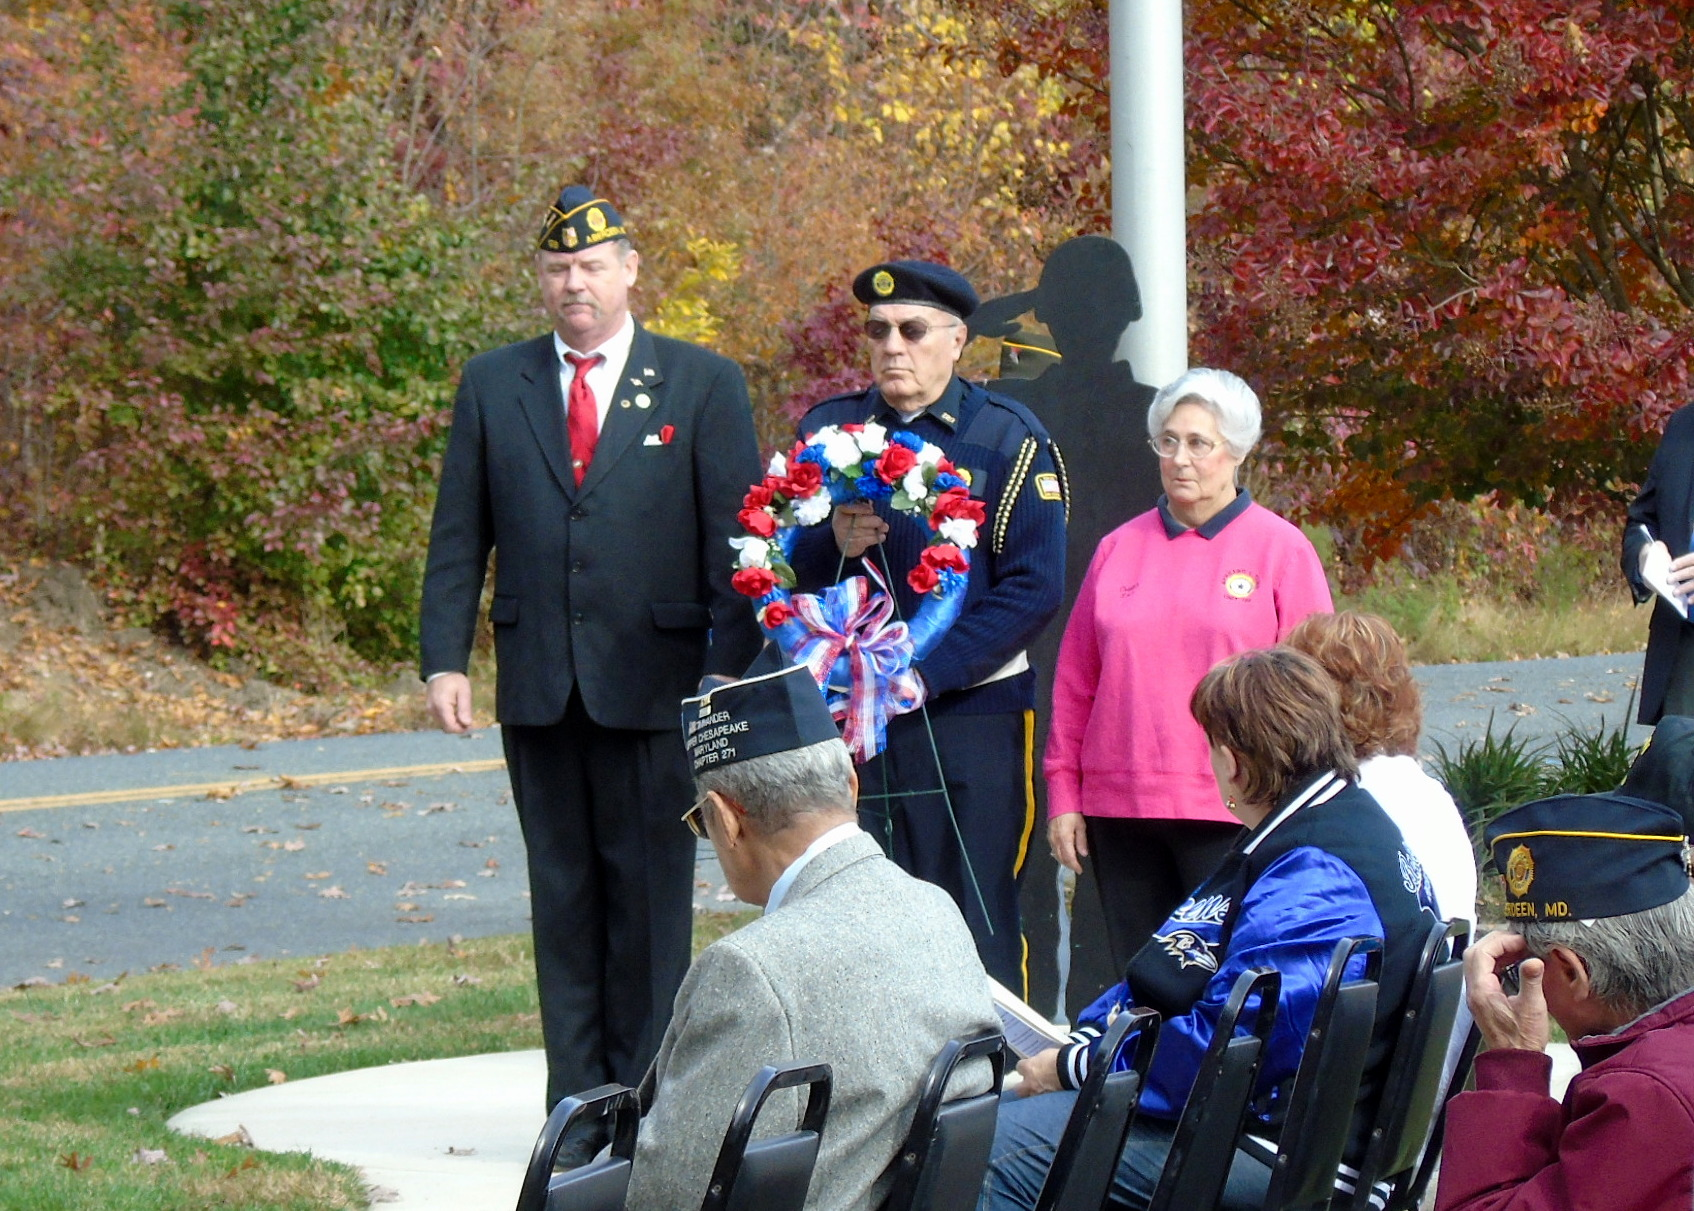 Maryland Veterans Participate in Veterans Day Ceremony